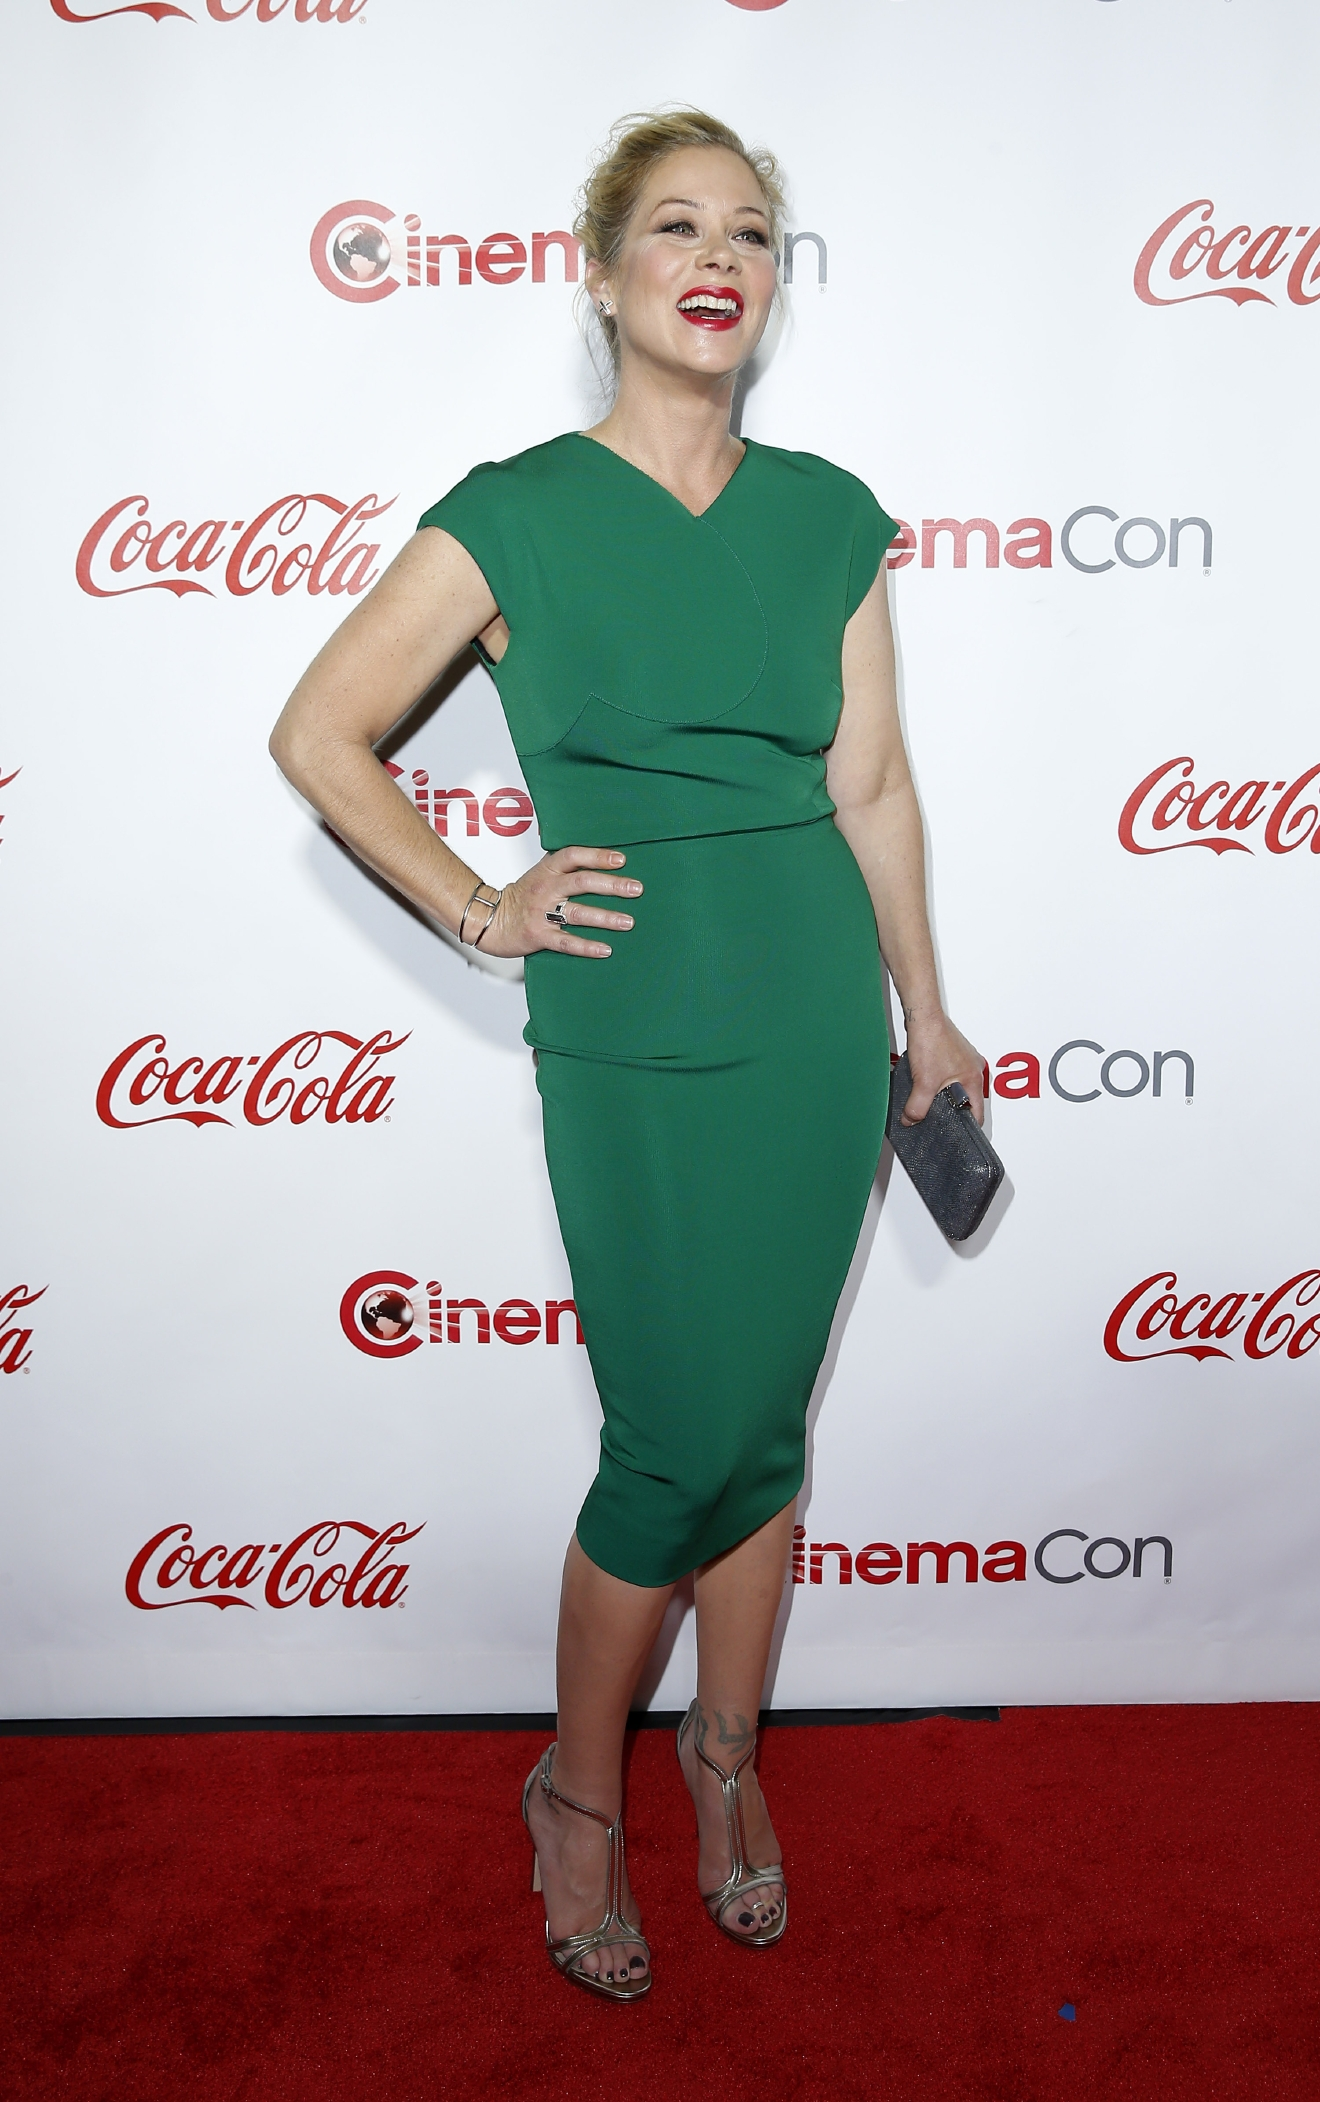 CinemaCon Big Screen Achievement Awards at Caesars Palace Resort and Casino                                    Featuring: Christina Applegate                  Where: Las Vegas, Nevada, United States                  When: 15 Apr 2016                  Credit: Judy Eddy/WENN.com